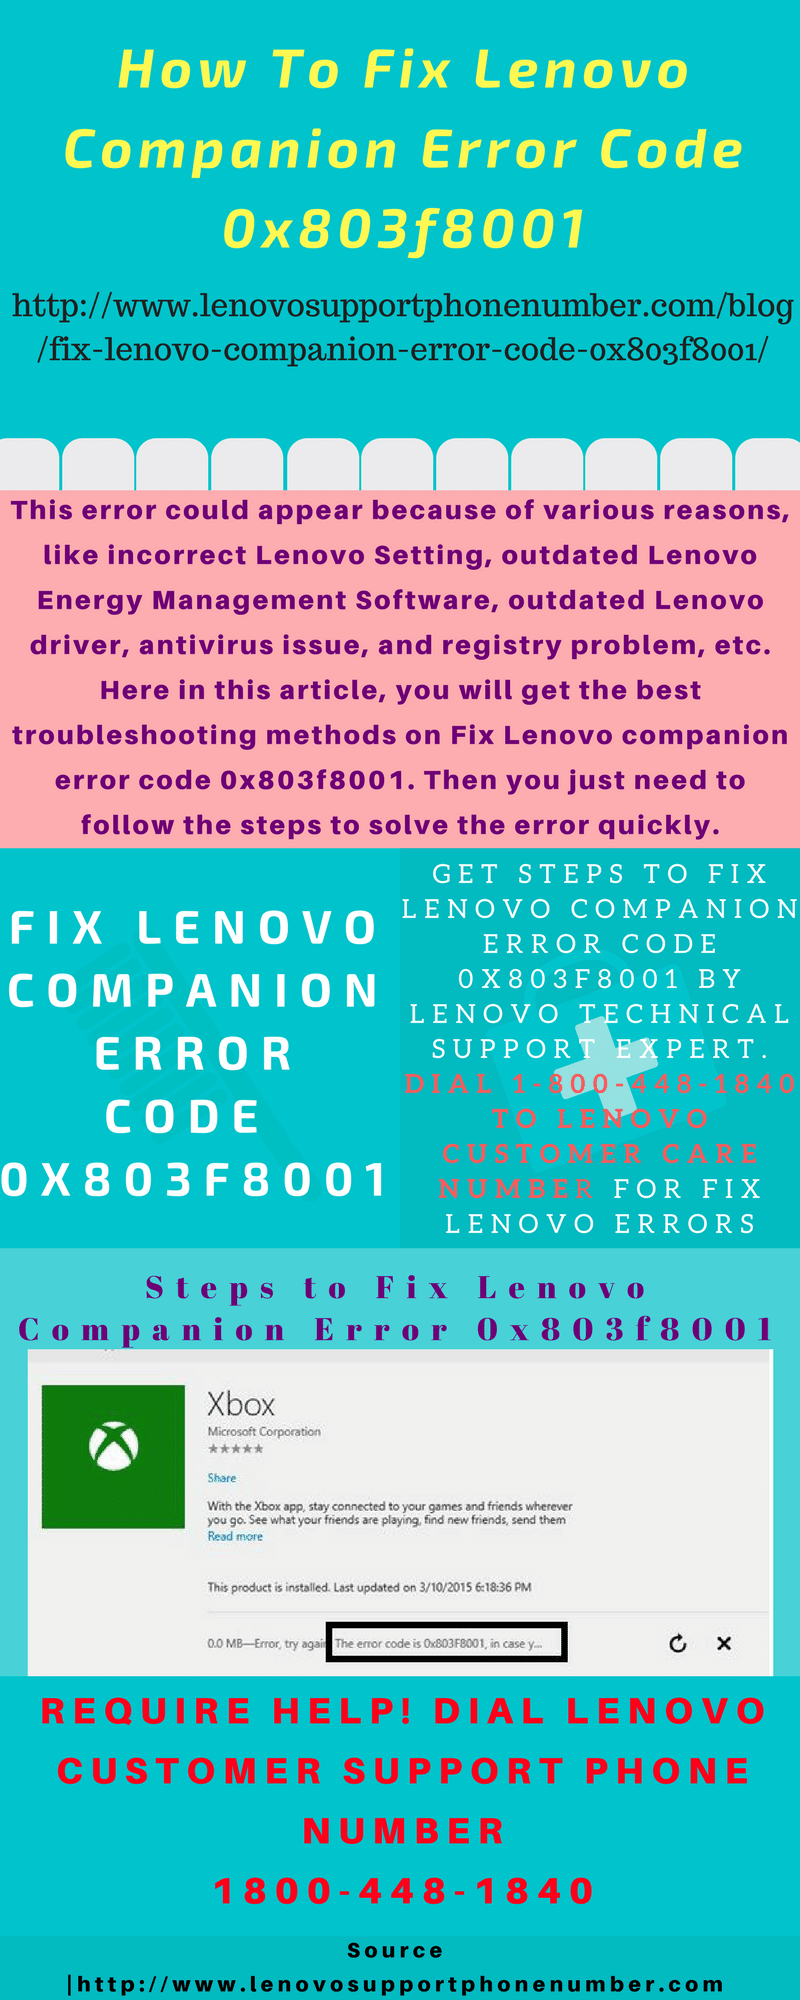 get best troubleshooting methods to fix lenovo companion error code 0x803f8001 by lenovo technical support expert call 1800 448 1840 lenovo support phone